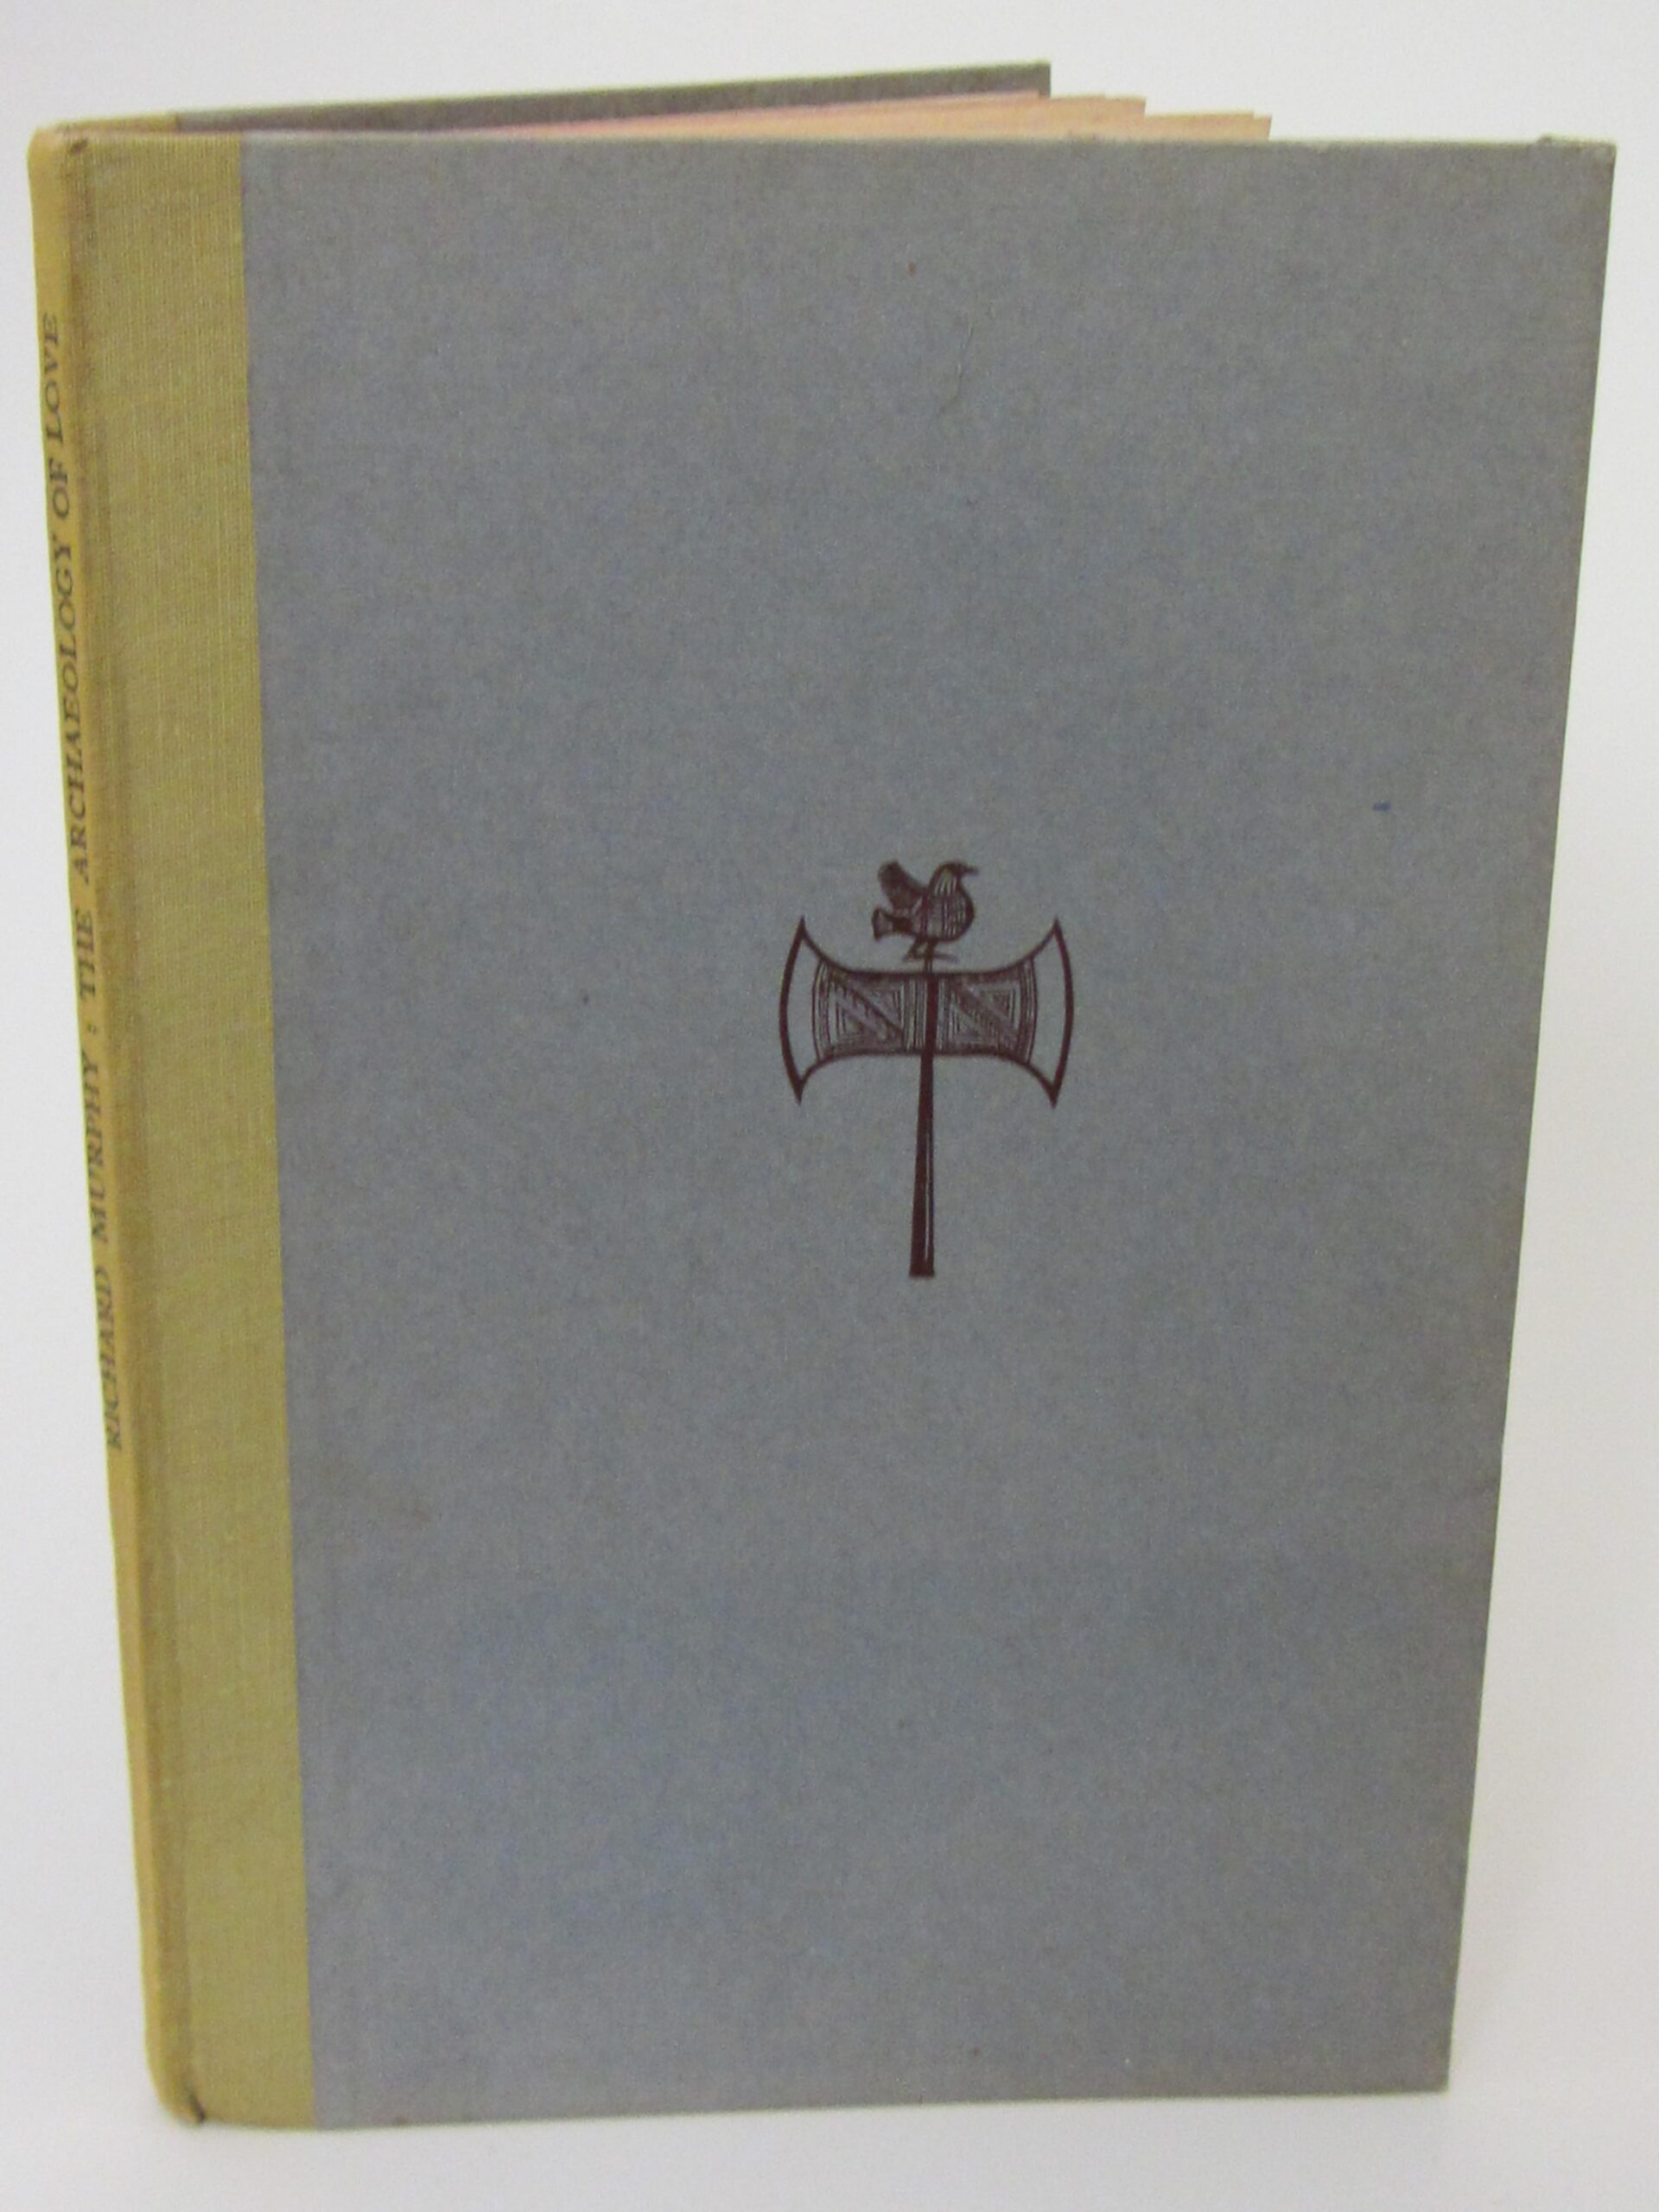 The Archaeology of Love. Author's First Book (1955) by Richard Murphy